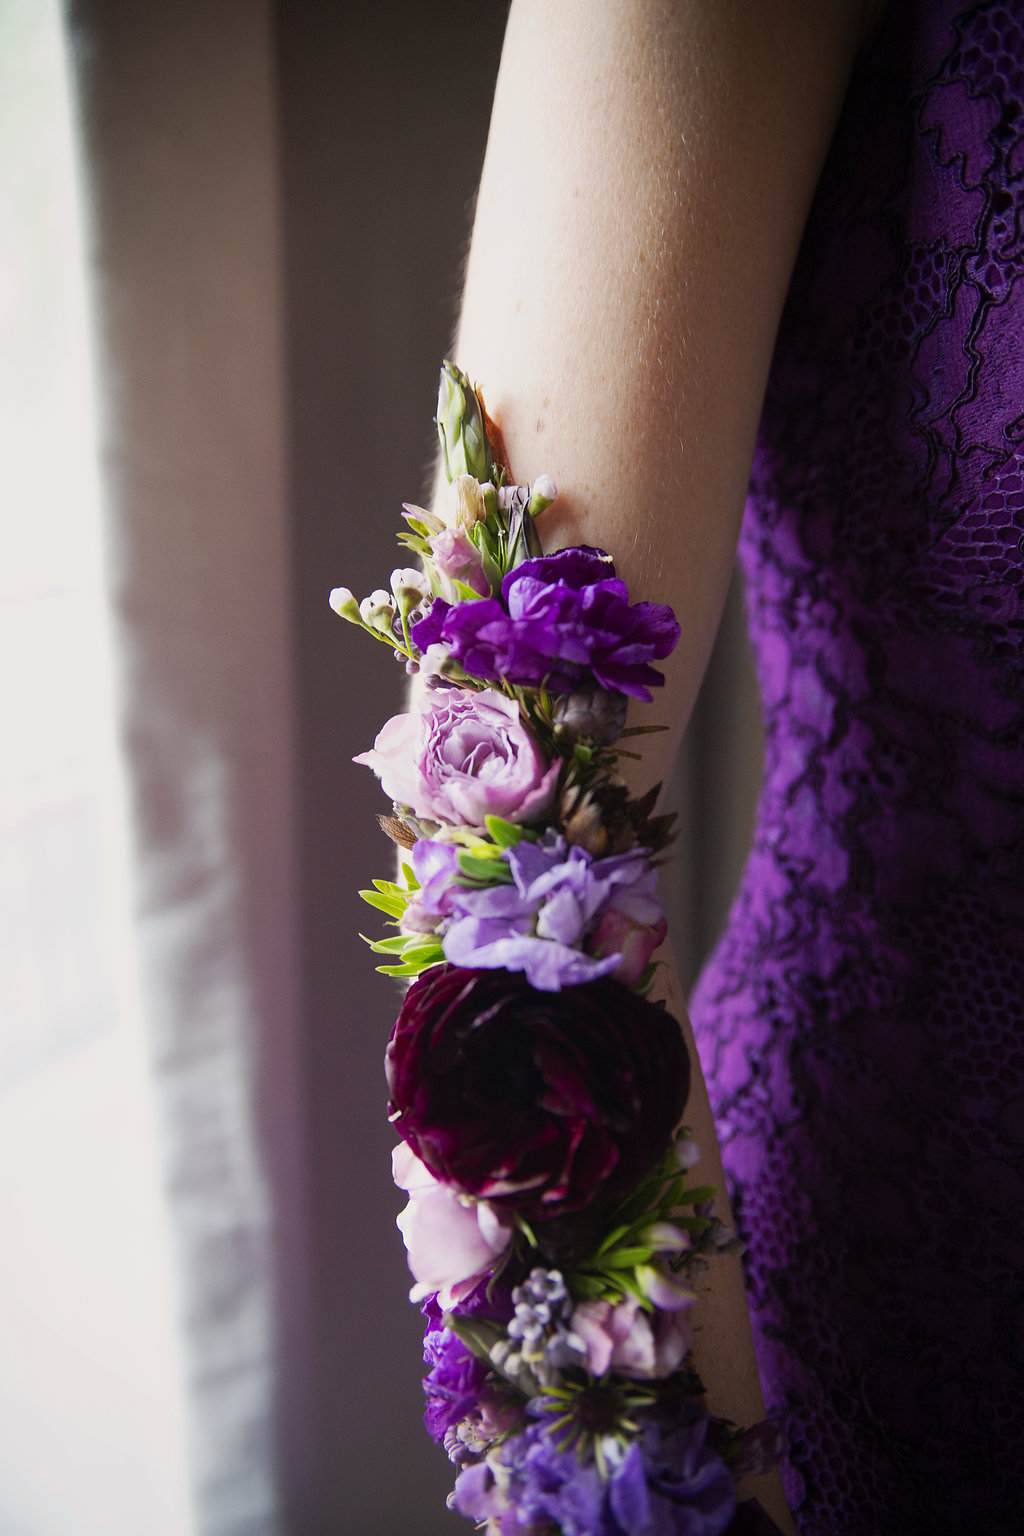 Detail show of flower tattoo created by Whats Up Buttercup for a spring wedding at Foundation for the Carolinas